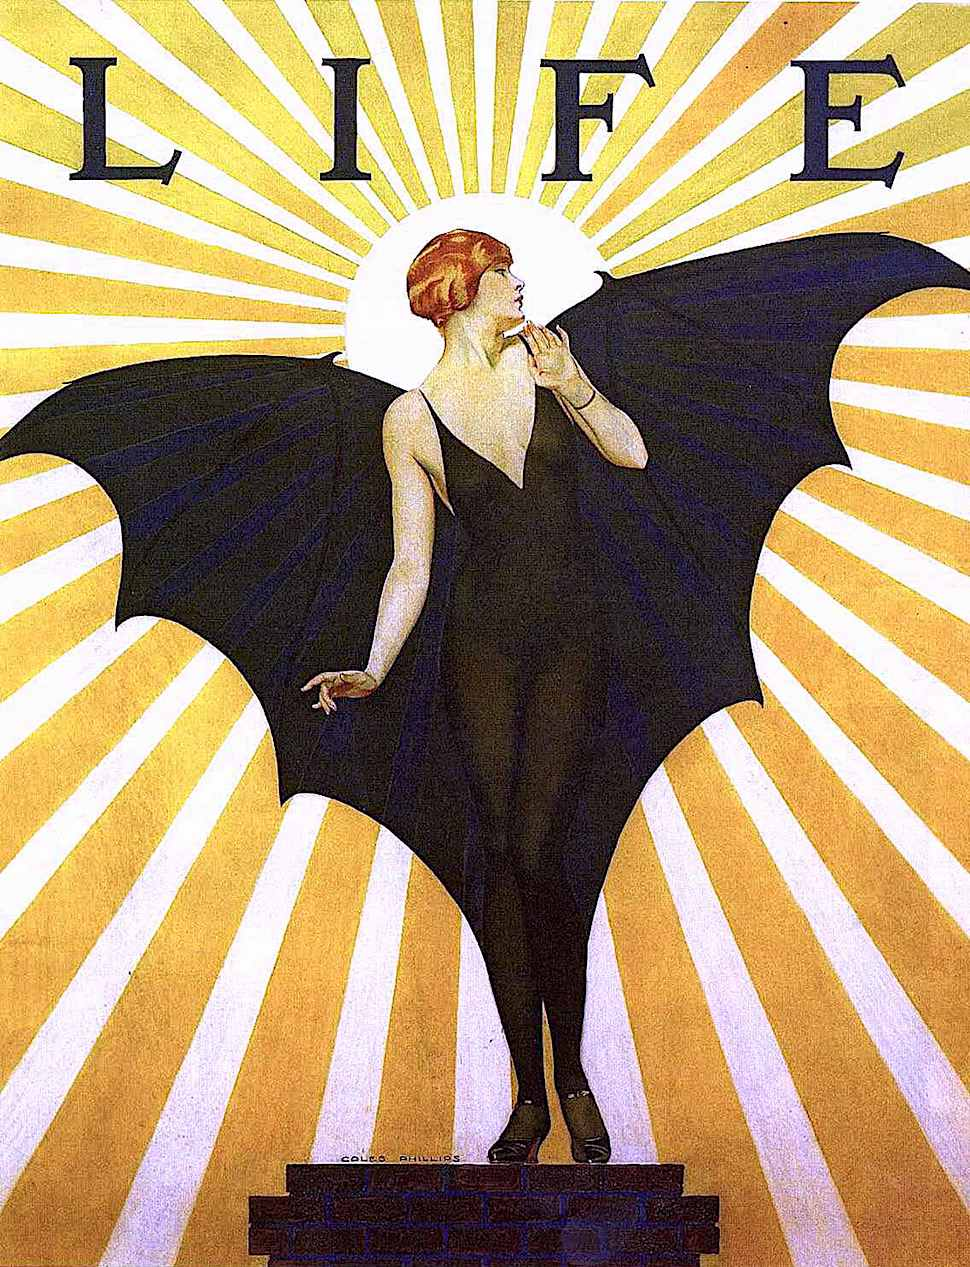 an early Coles Phillips illustration for Life Magazine showing a woman with bat wings surprised by the rising sun, radiating